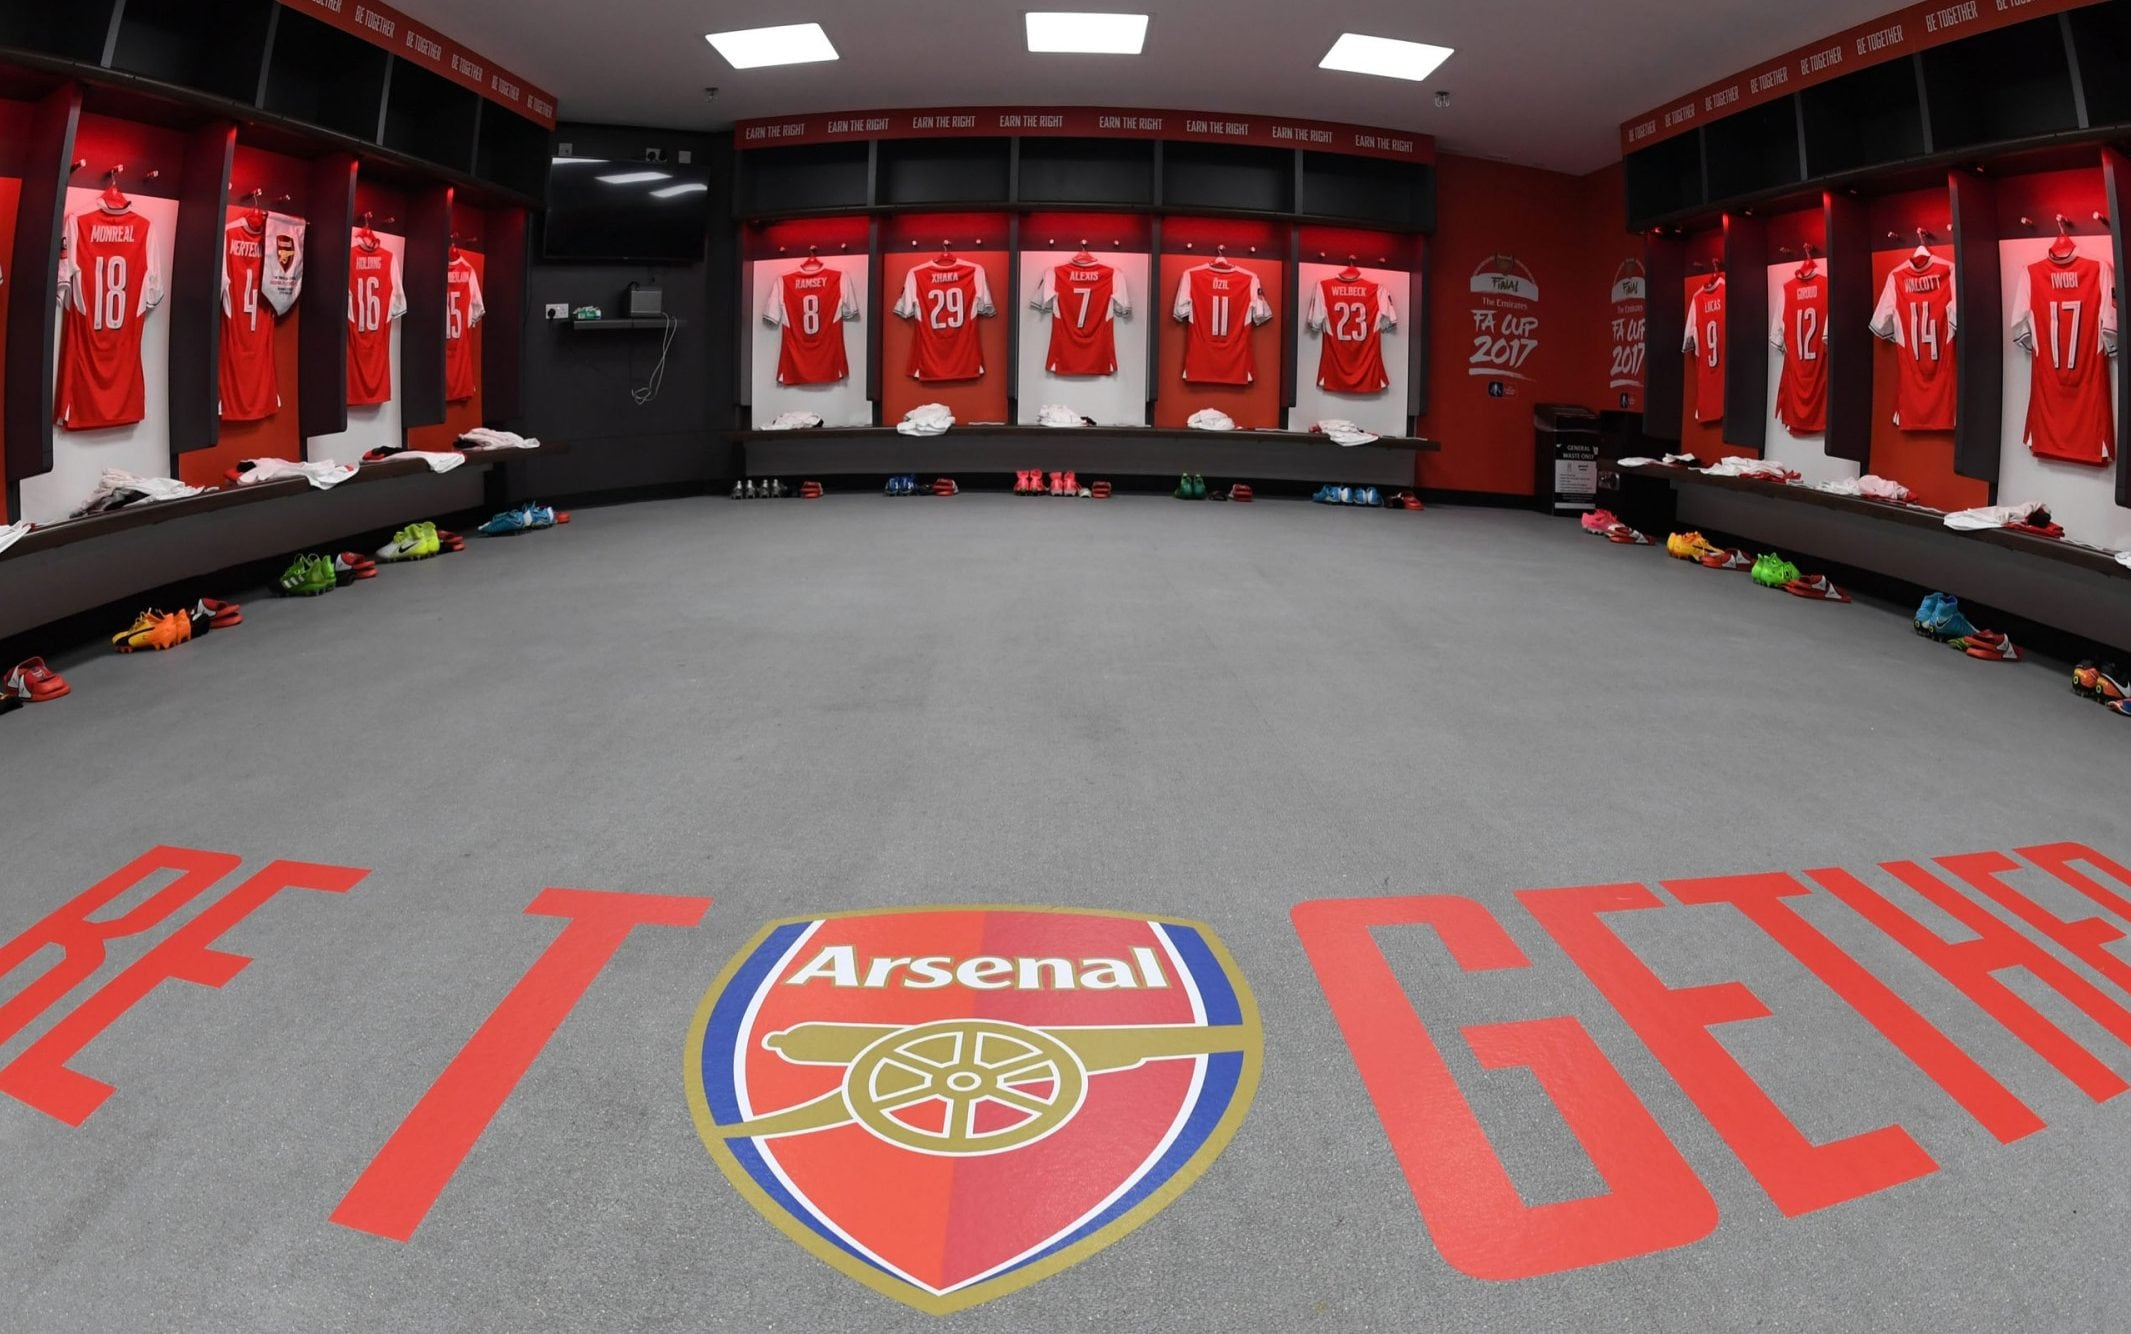 Kits hang ready for the Arsenal team in the changing rooms